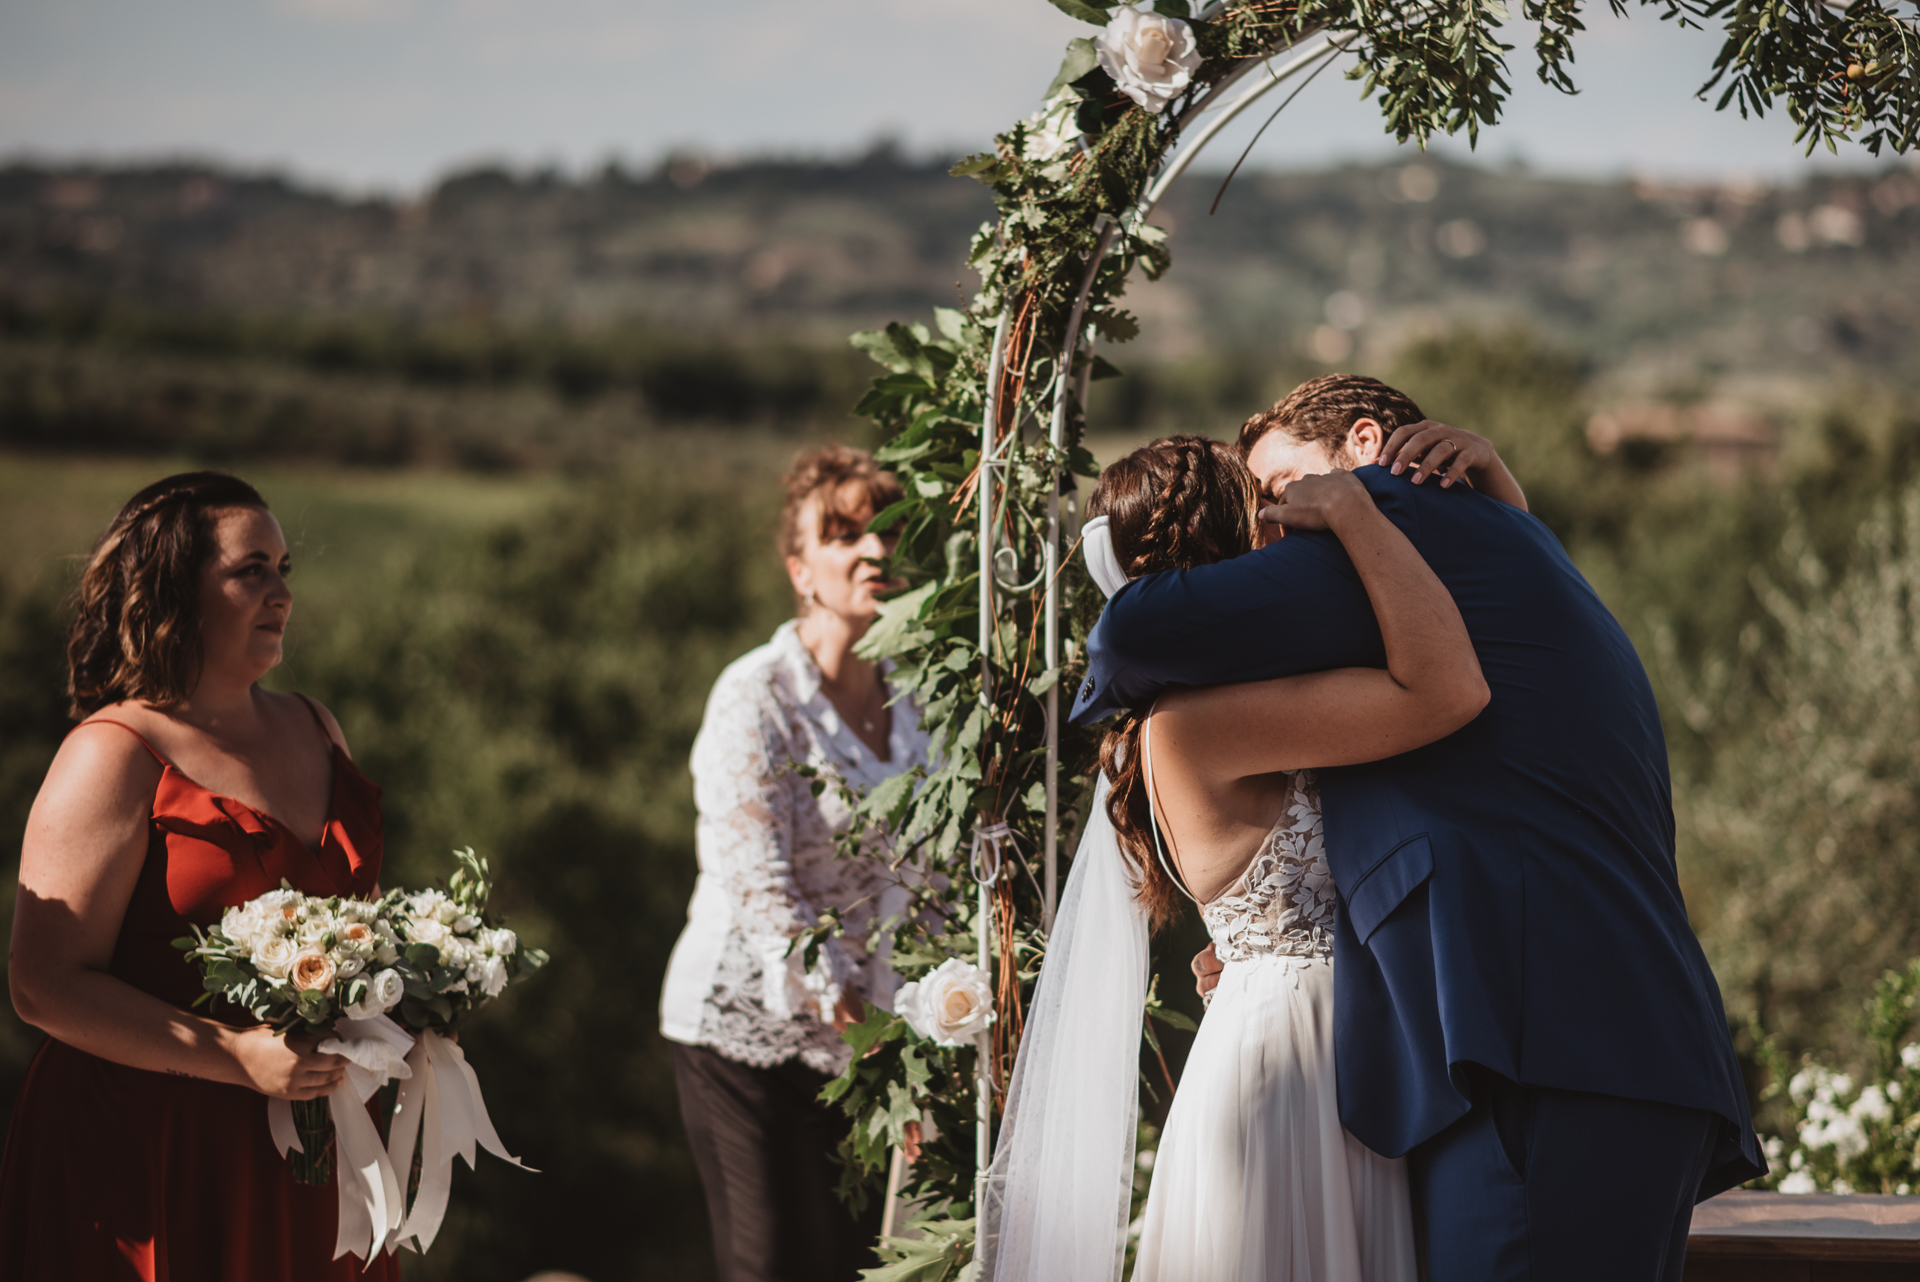 American Wedding in Italy Villa Scopetello Tuscany